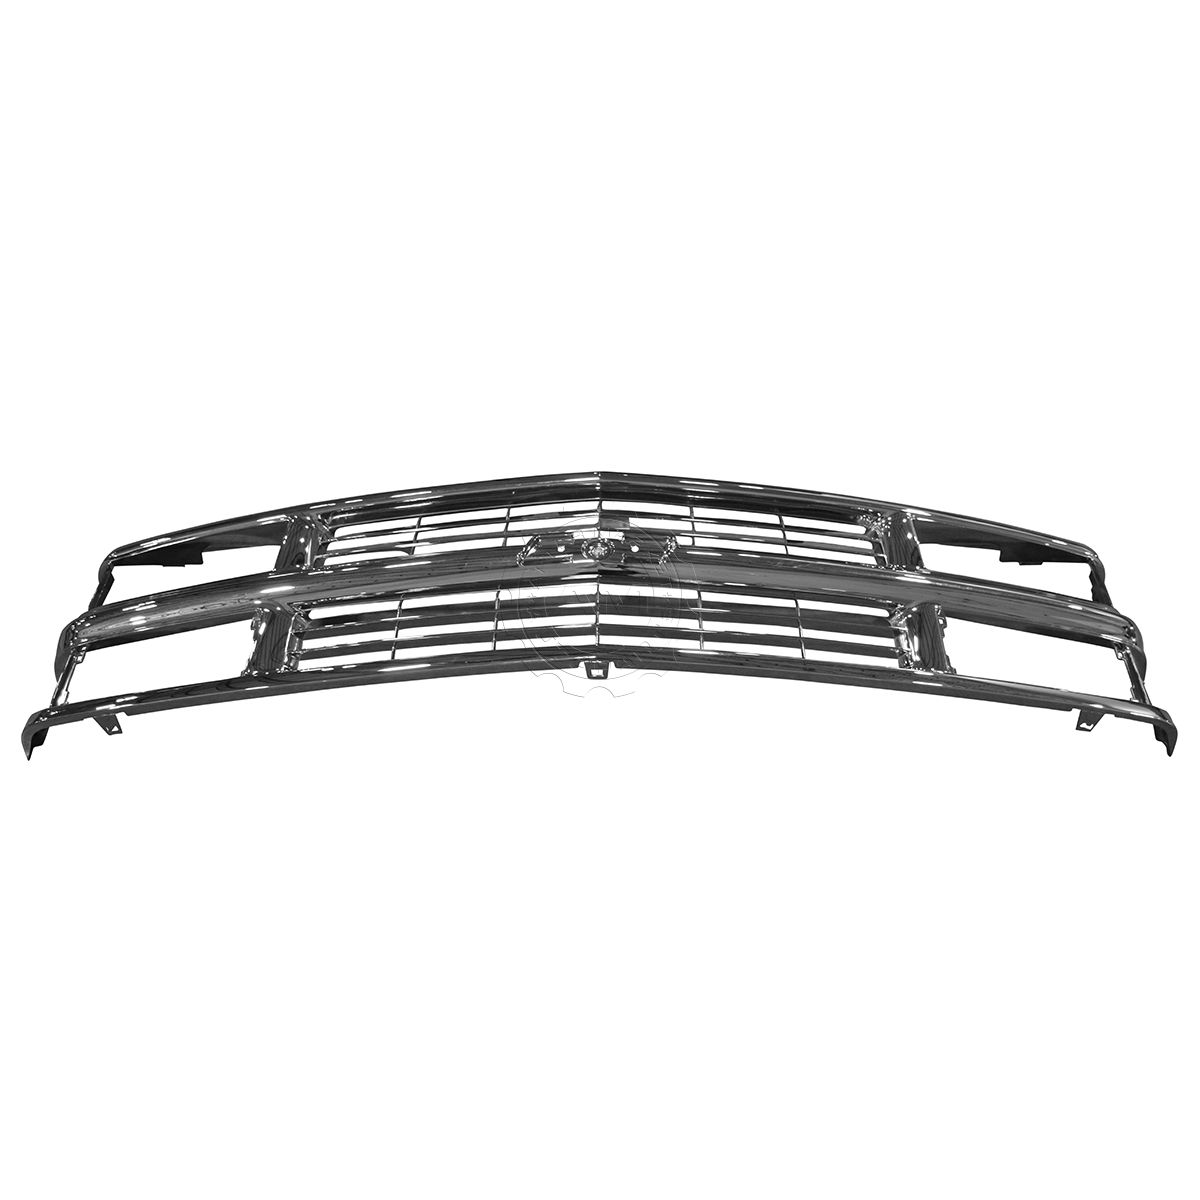 grille grill chrome front end for chevy c  k pickup truck suburban tahoe blazer 192659119612